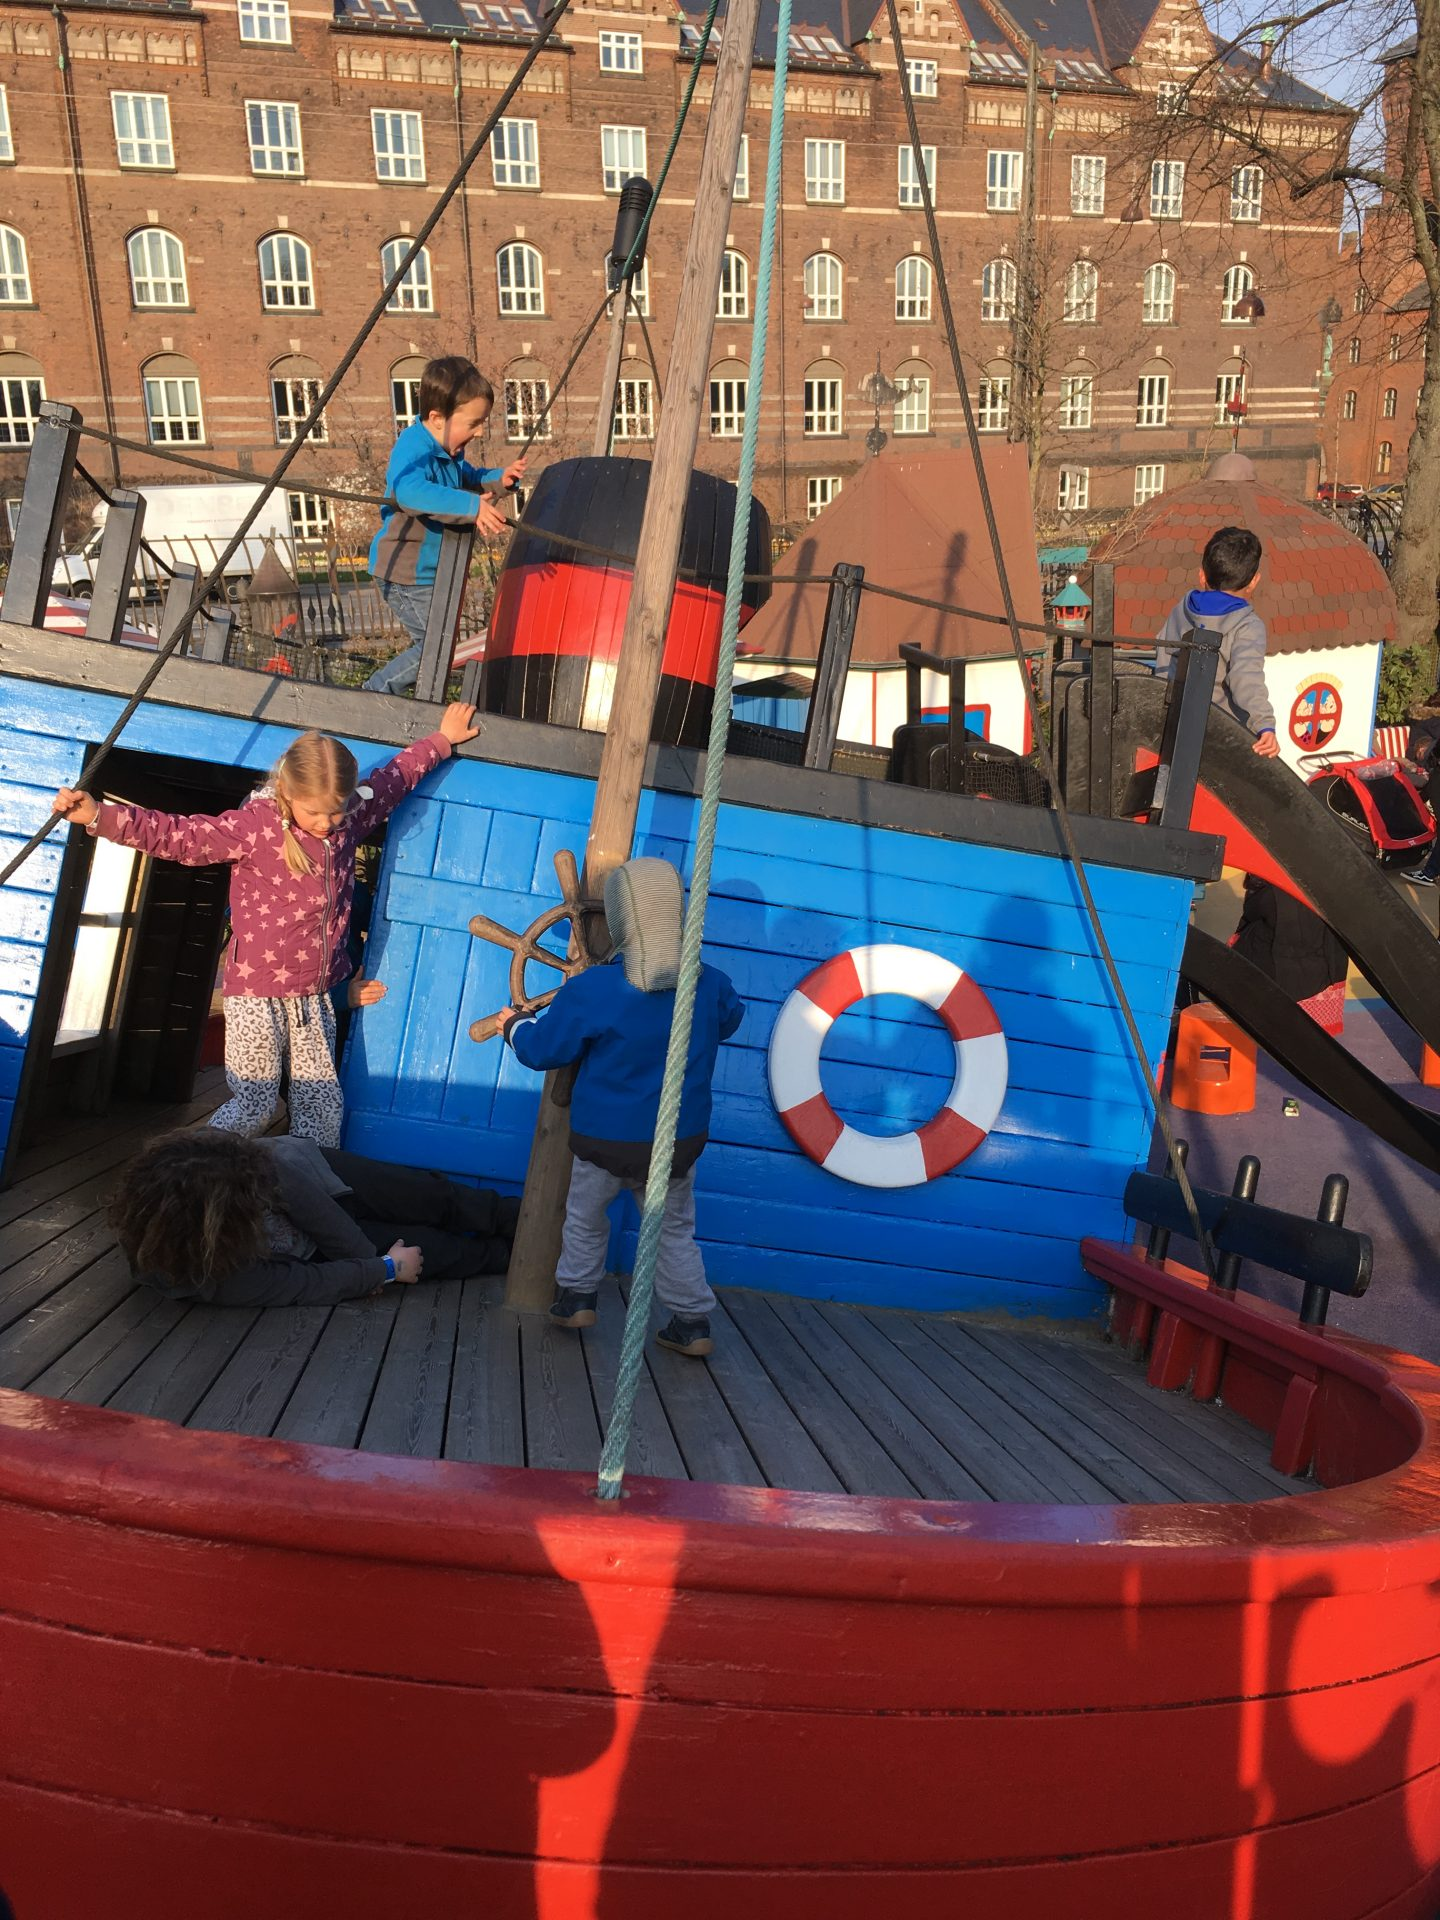 city breaks with kids: Playground, Tivoli Gardens Copenhagen with kids